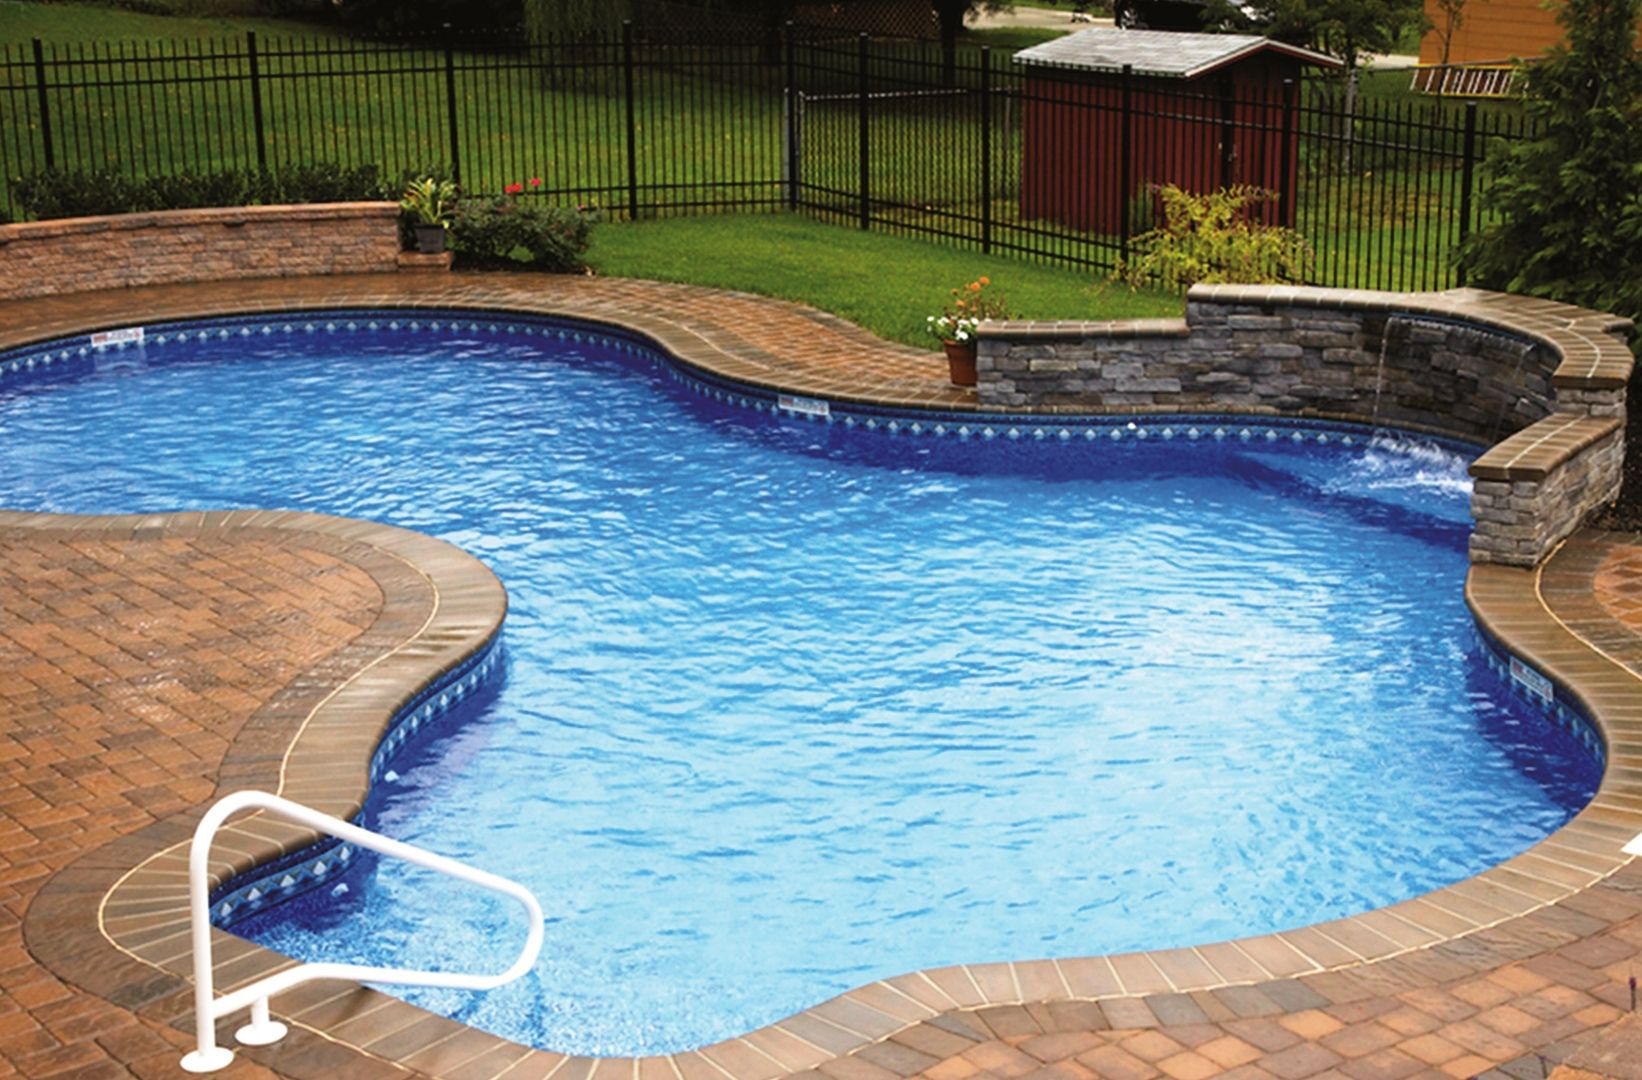 Back yard swimming pool ideas swimming pool design pinterest small backyard design - Swimming pool designs ...